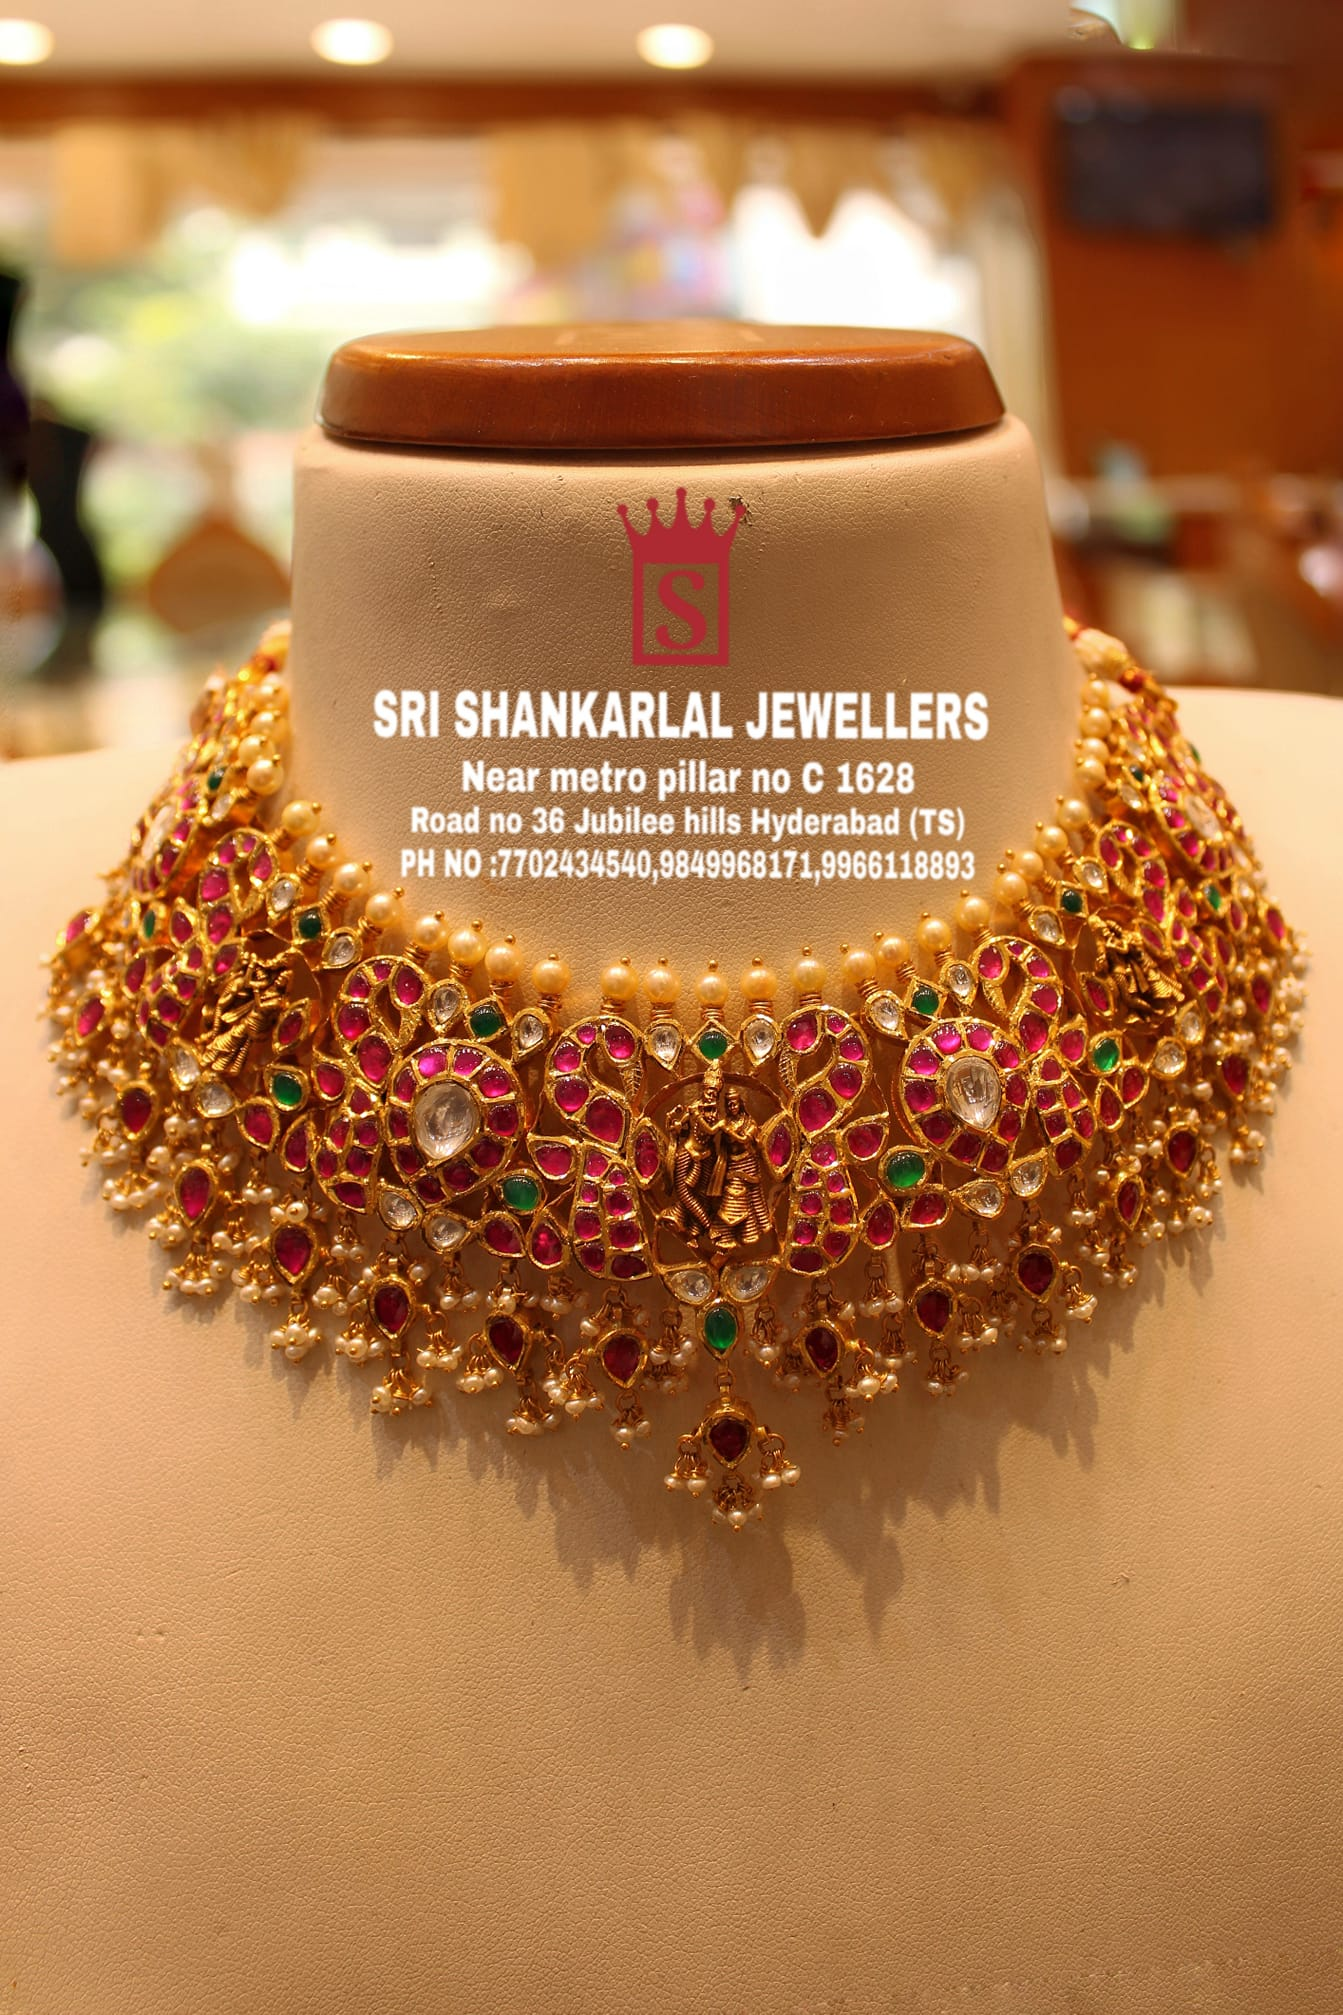 Latest kundan Necklace in light weight and heavy looking JEWELLERY Please visit us on video call 7702434540 9849968171 996118893 to see more collection 2021-06-29